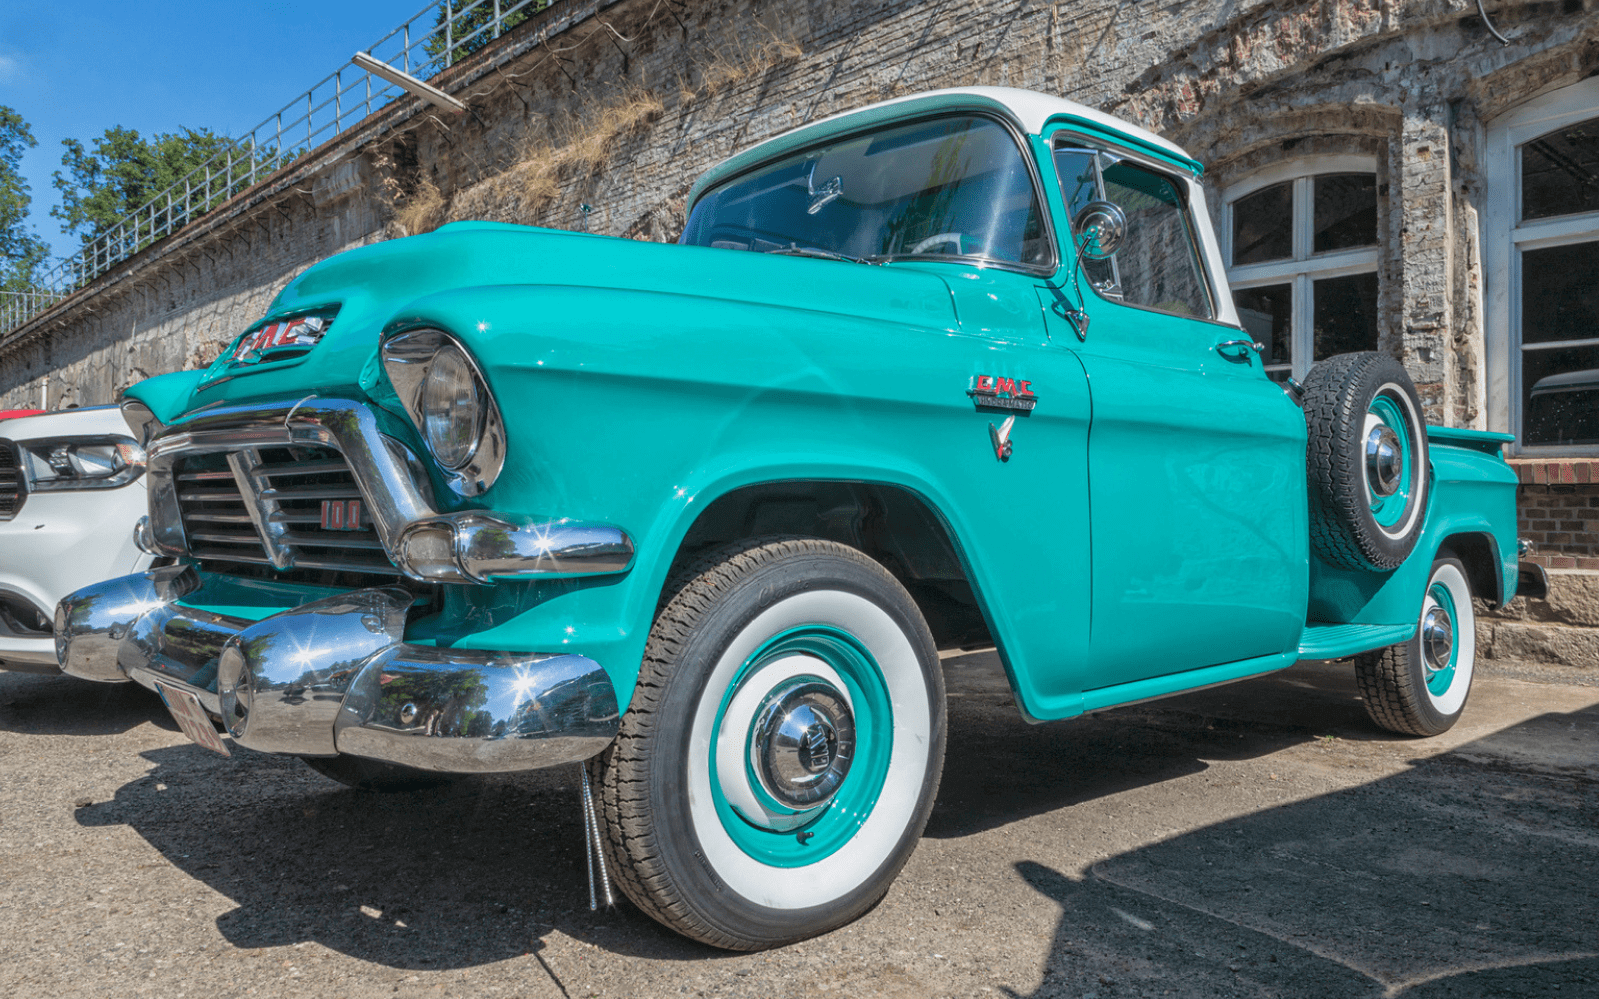 Blue American truck parked